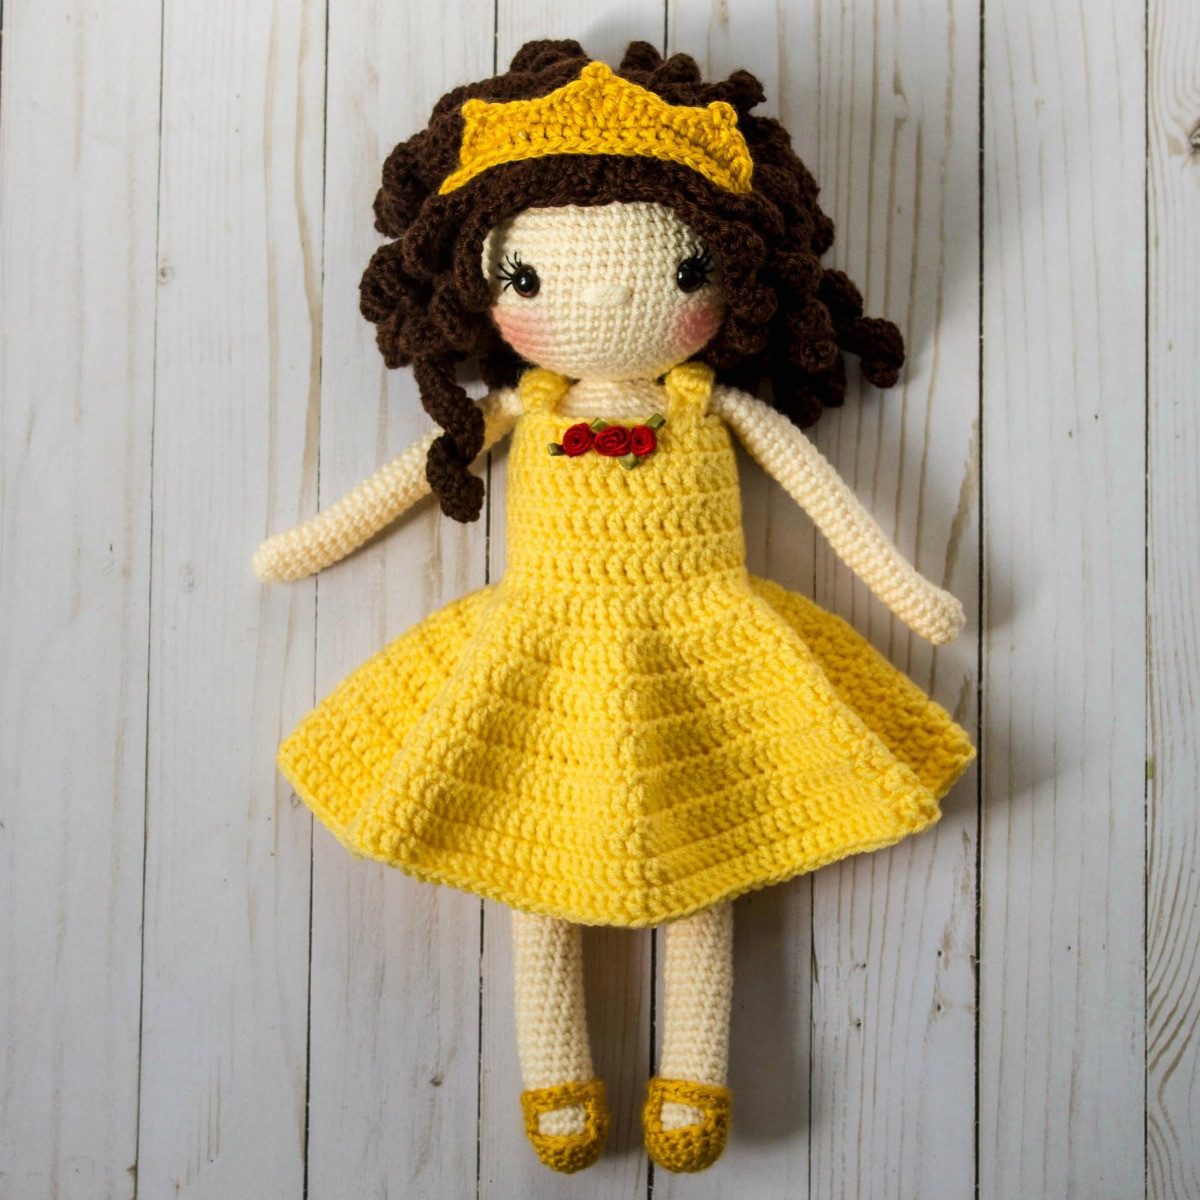 "Doll Patterns Beautiful Free Crochet Doll Pattern the Friendly sophie Of Doll Patterns Inspirational 12"" Doll Crochet Pattern Mamacheemamachee"